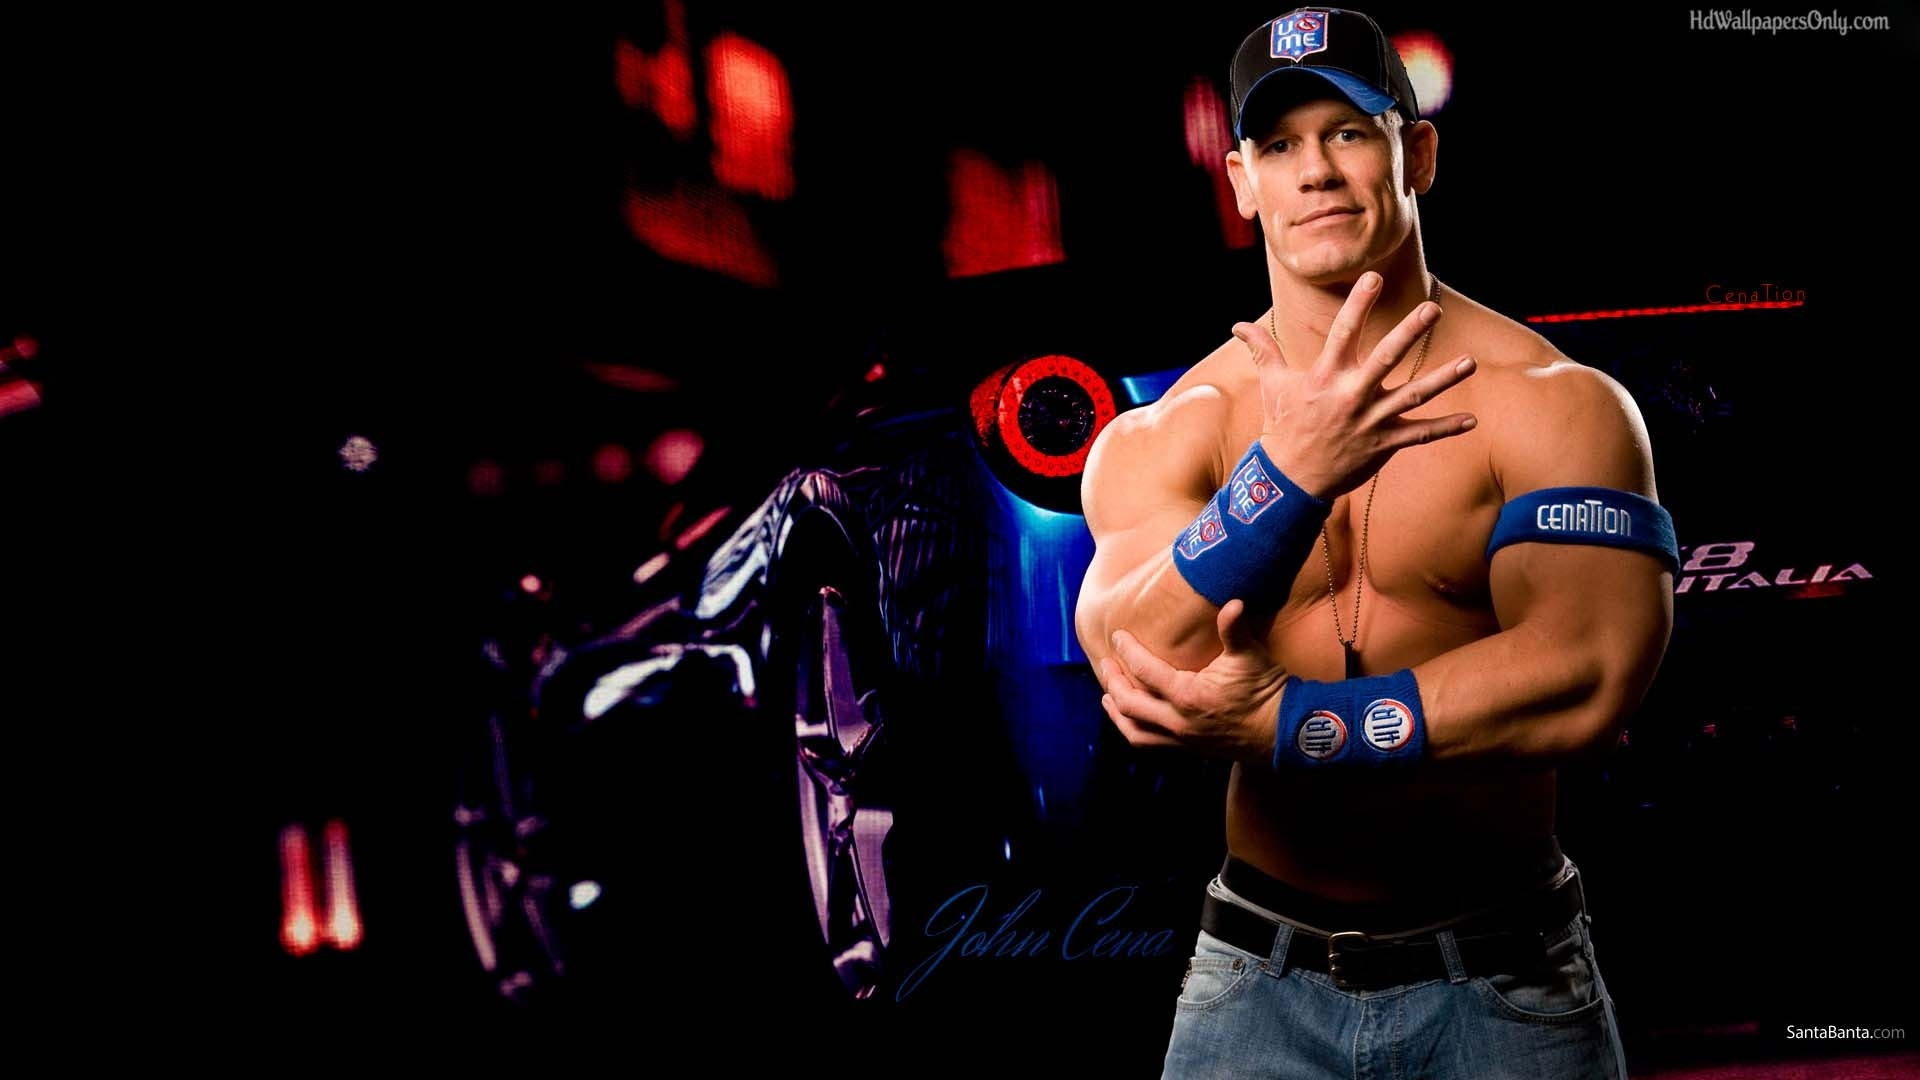 john cena full hd wallpapers - wallpaper cave